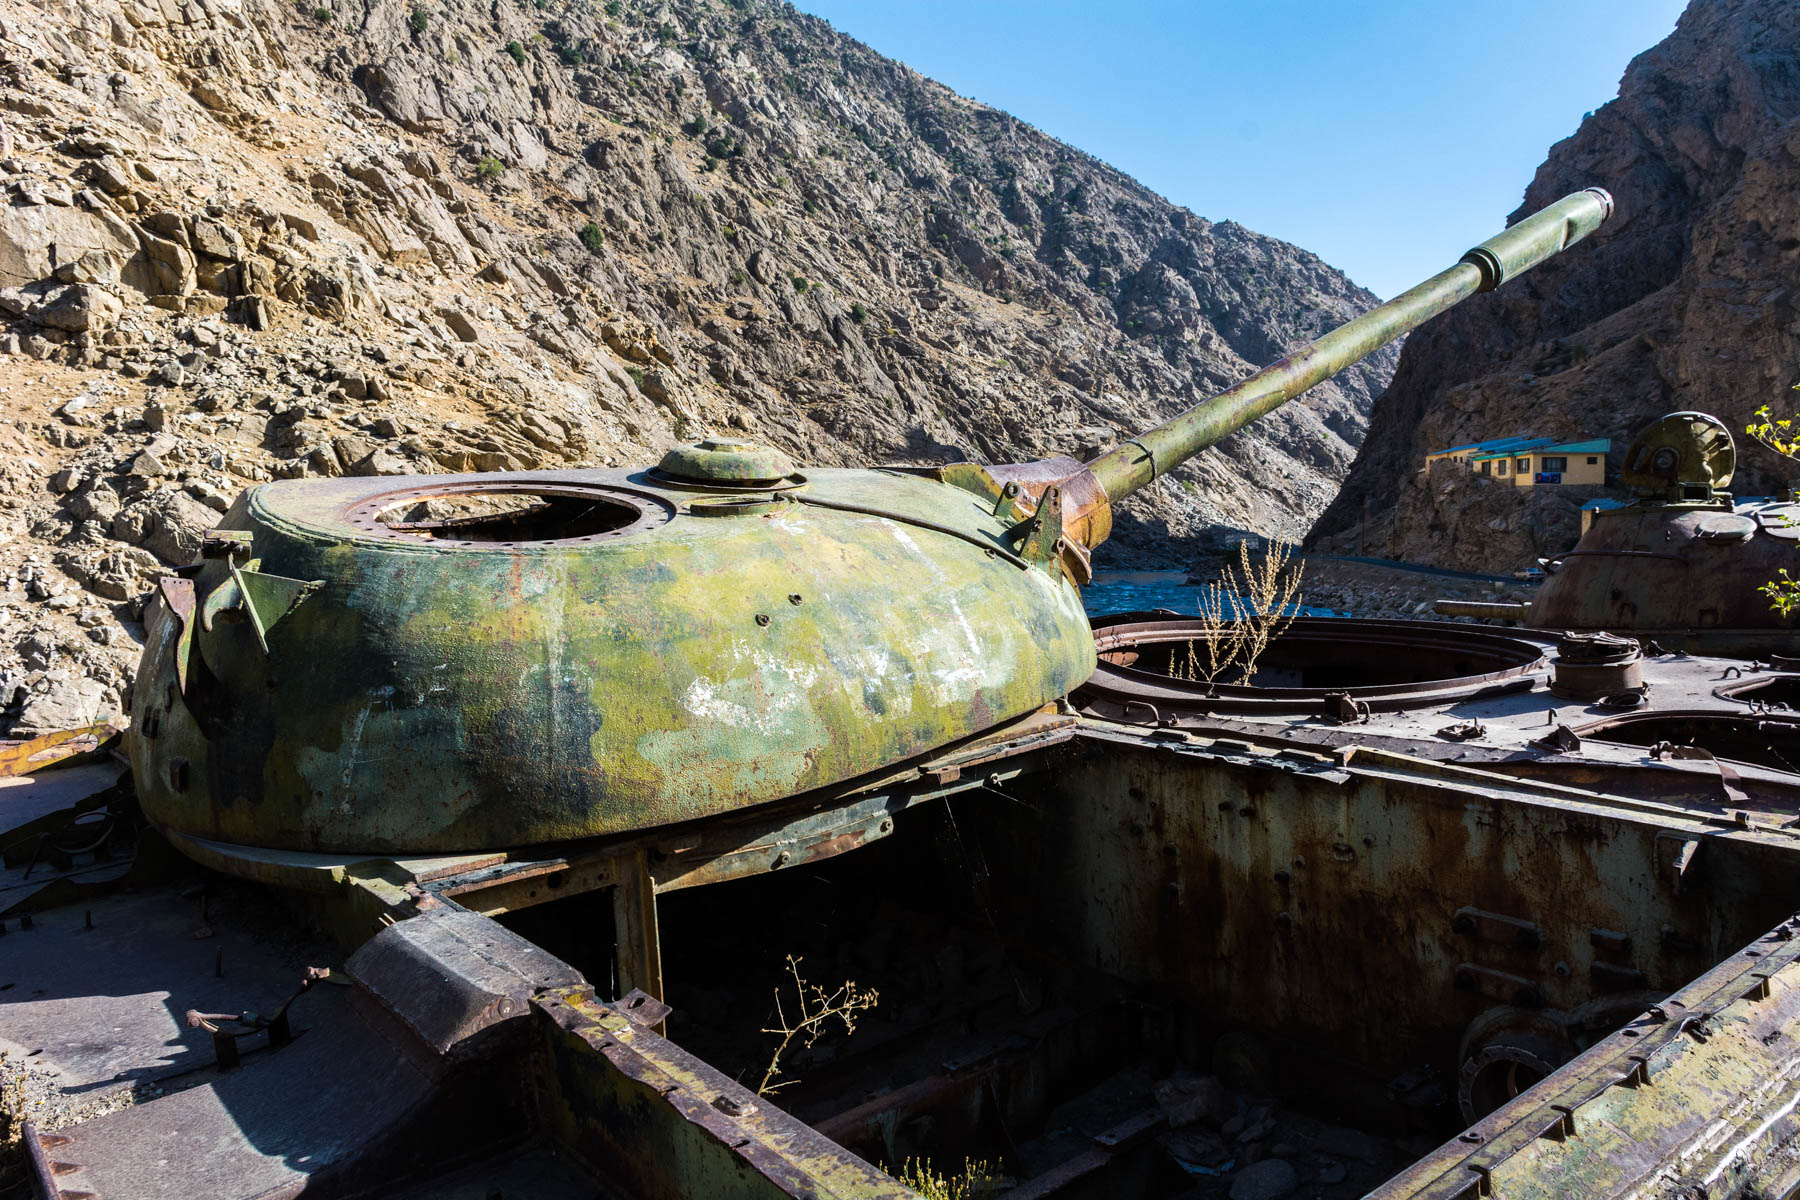 A bombed-out tank in Panjshir Valley, Afghanistan - Lost With Purpose